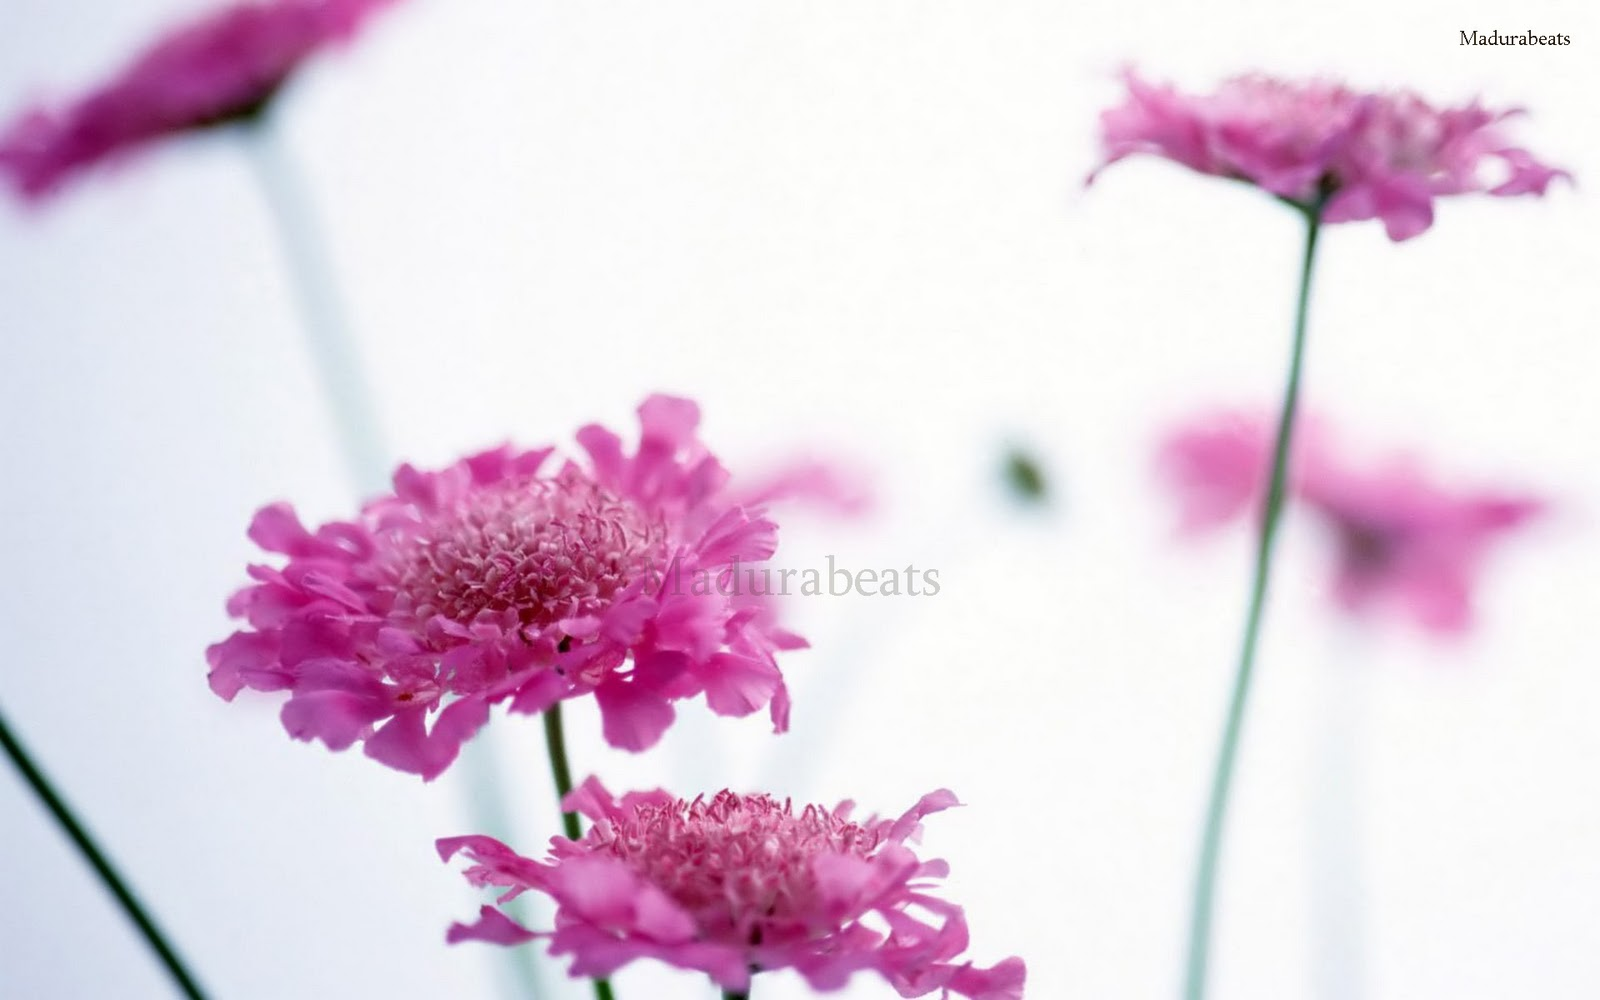 Wildflowers pink flower White background,Flower images, Wide screen wallpapers,fresh flowers,Beautiful flowers